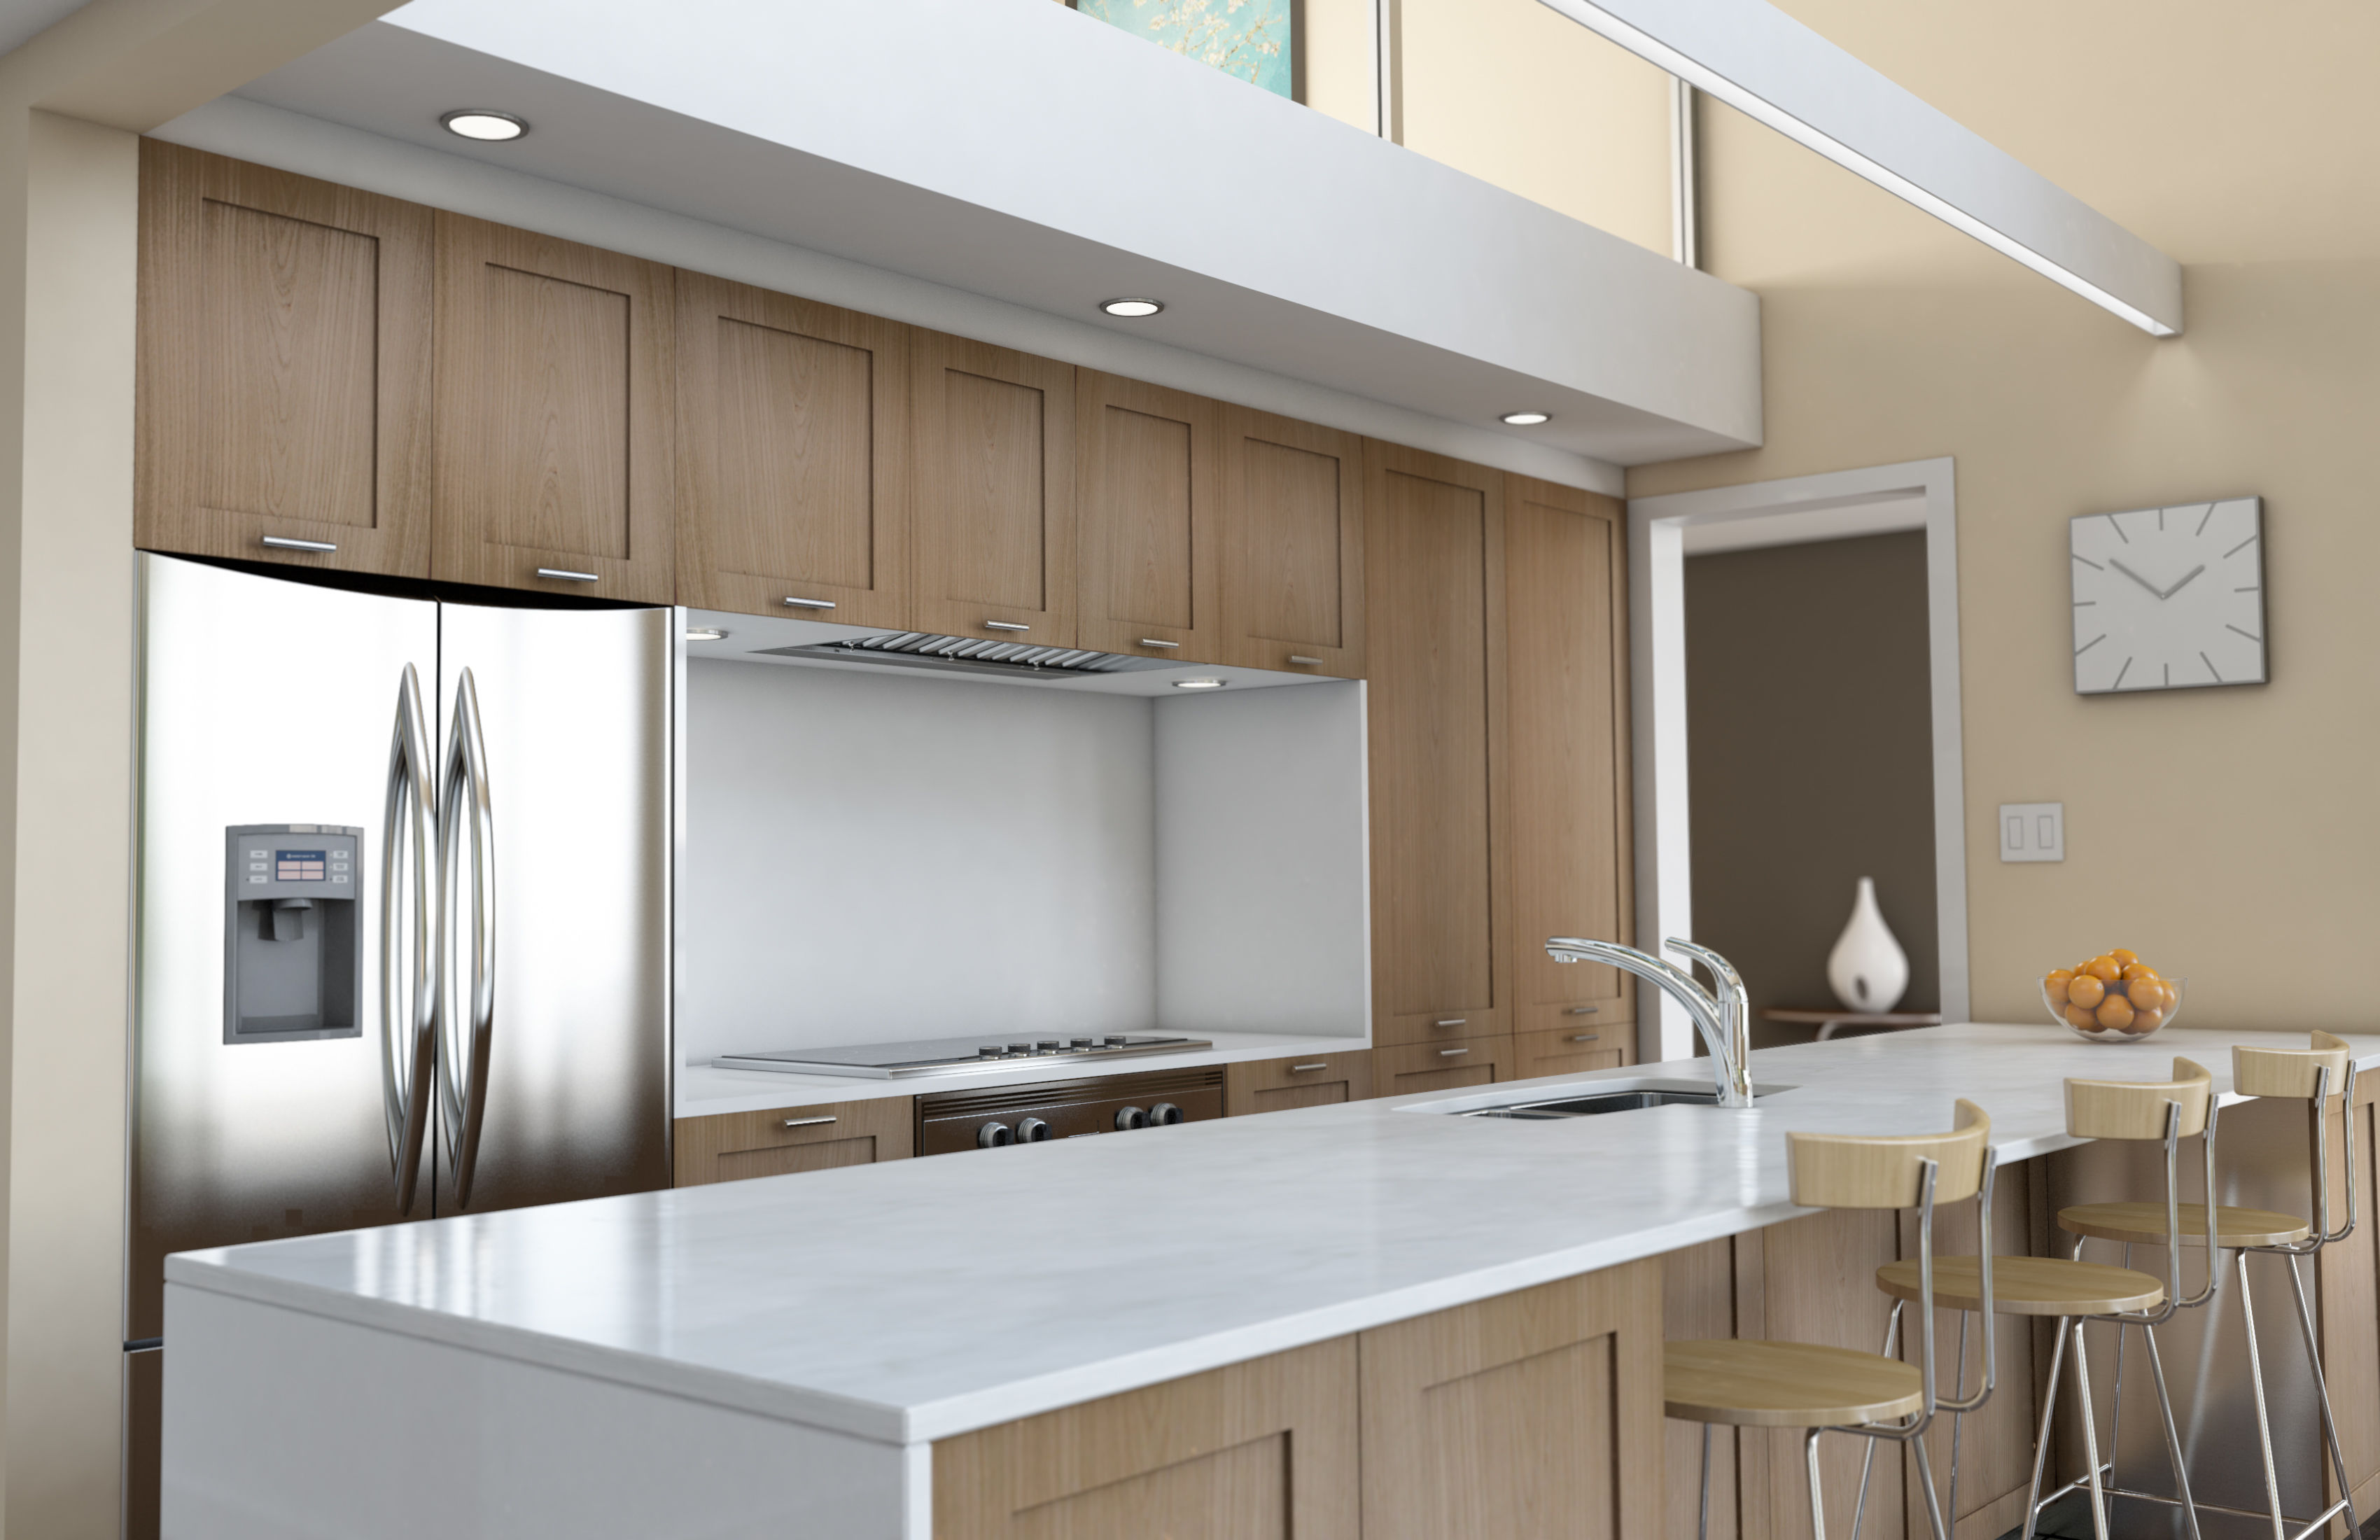 zephyr ak9234as monsoon i collection 34 one piece liner 600 cfm zephyr range hoods - Zephyr Range Hoods